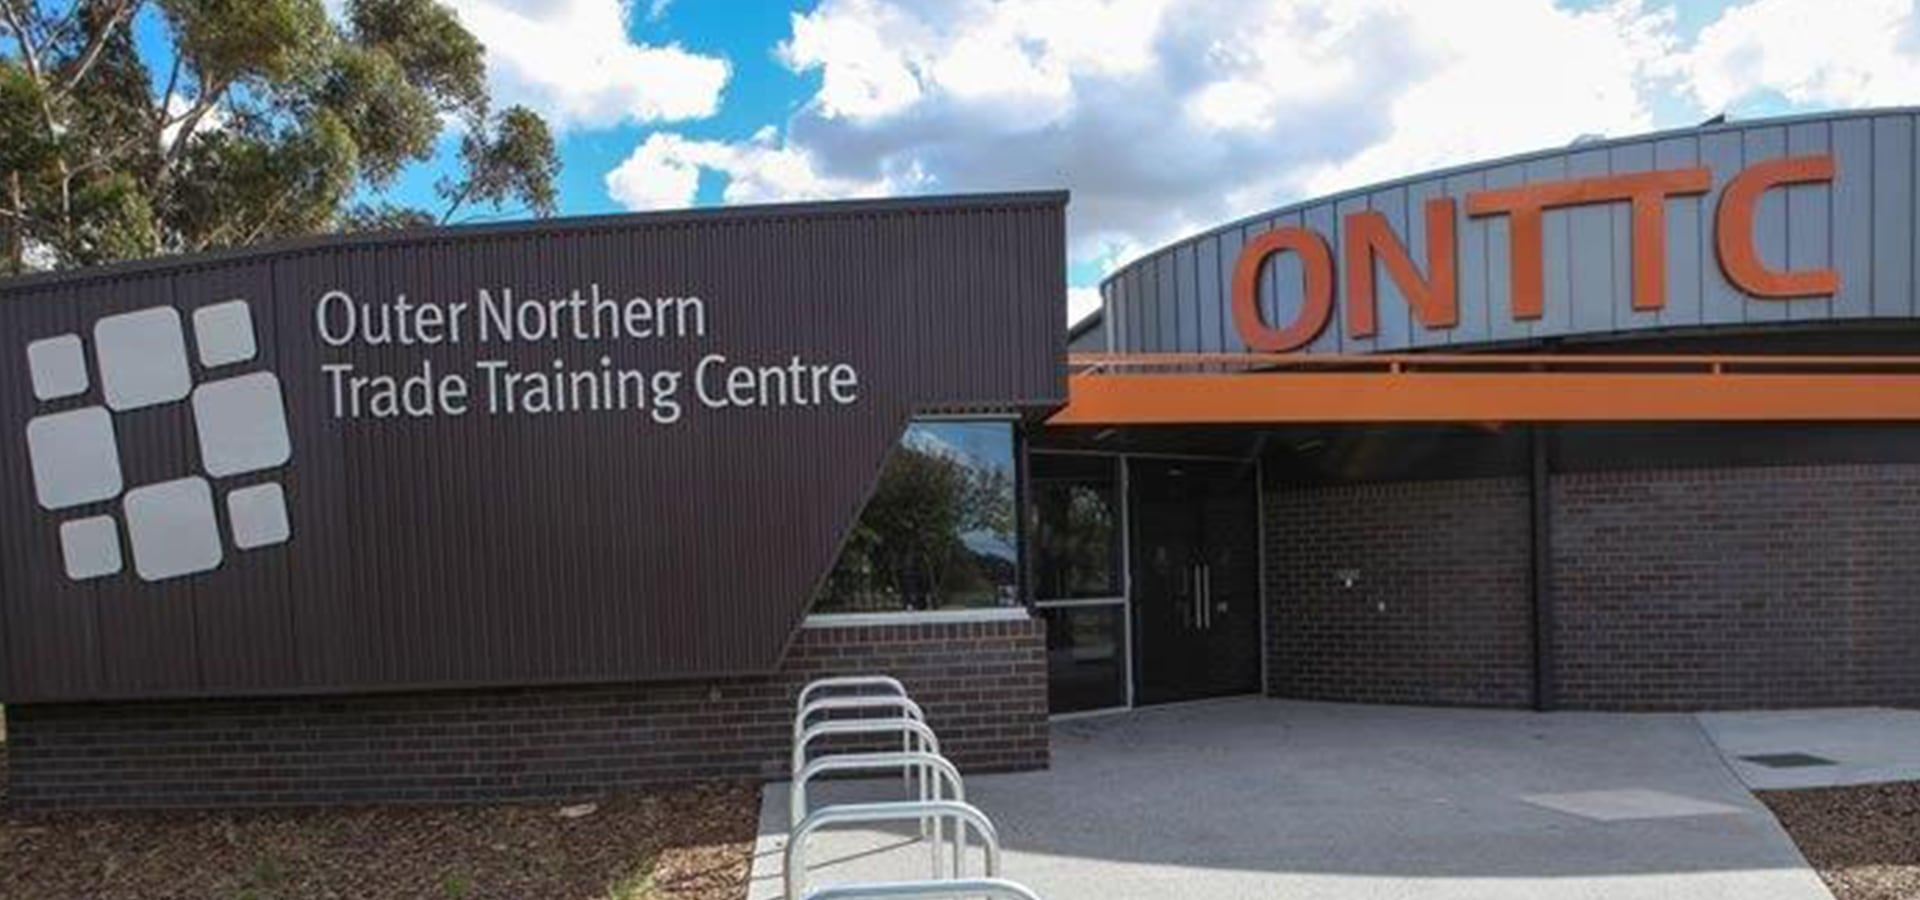 Outer Northern Trade Training Centre